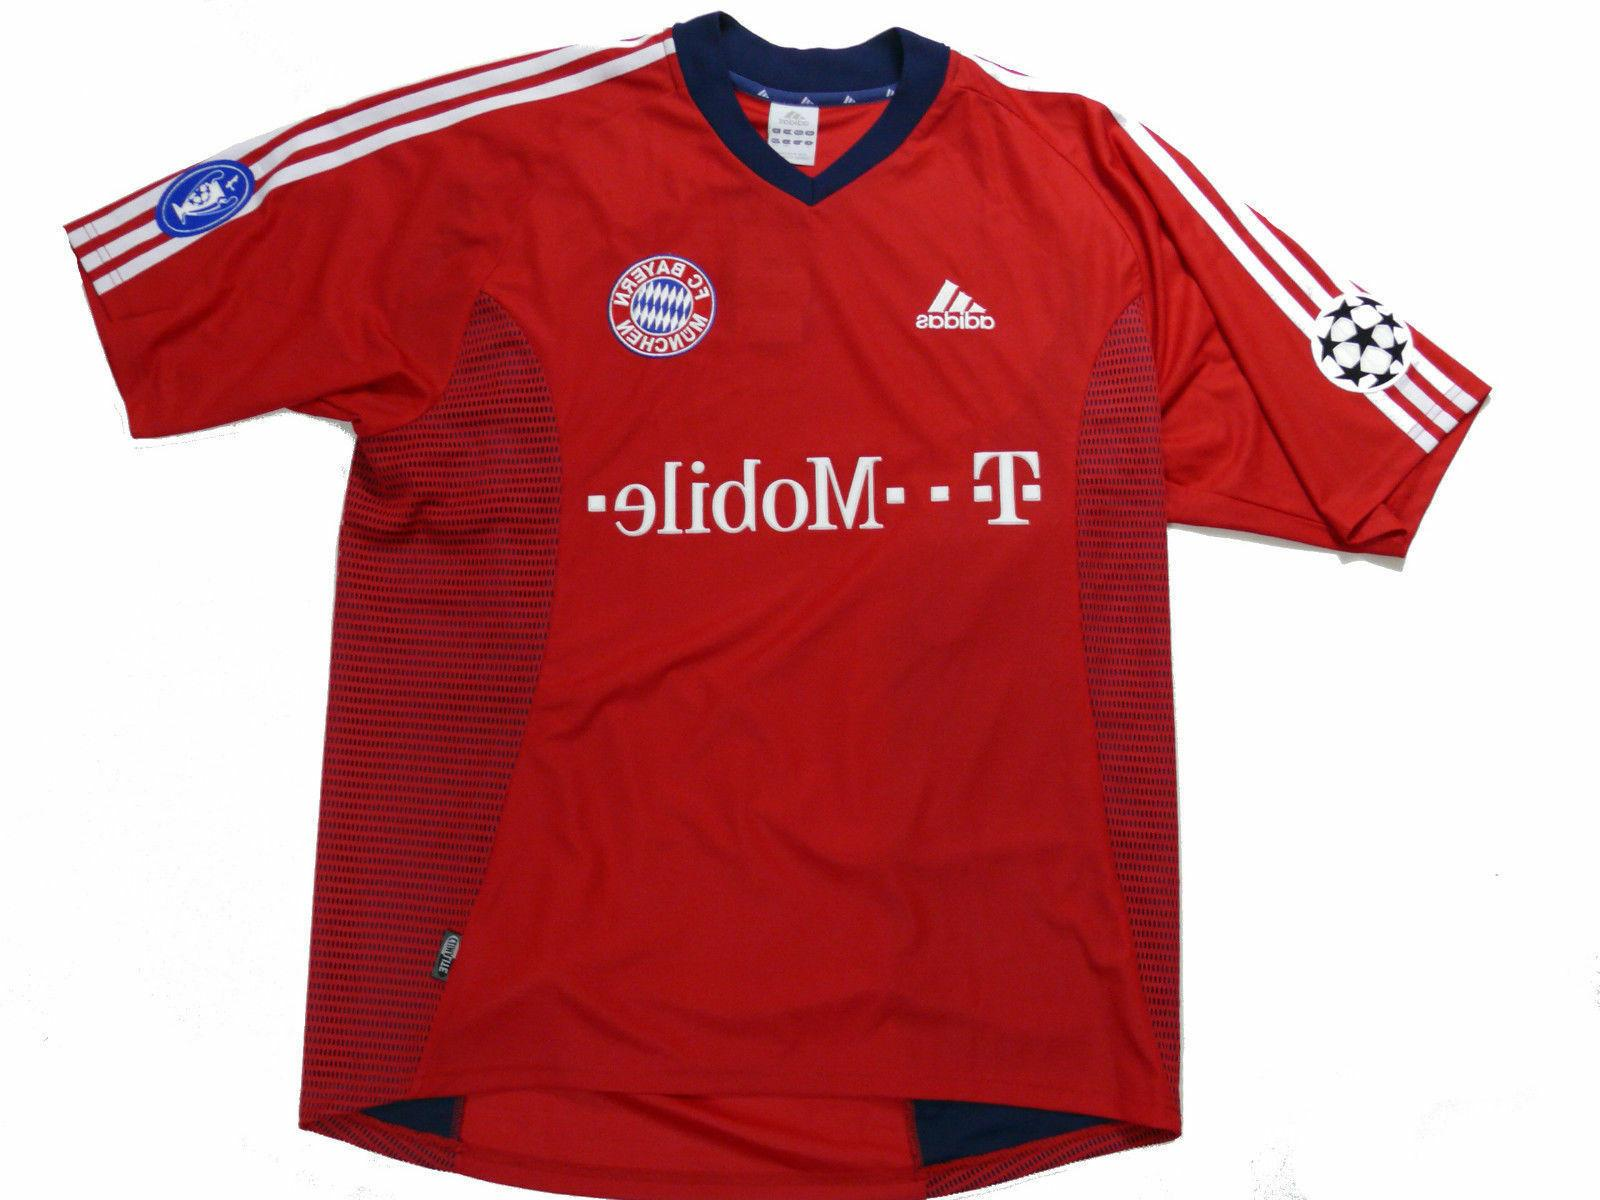 new authentic bayern munich germany soccer jersey